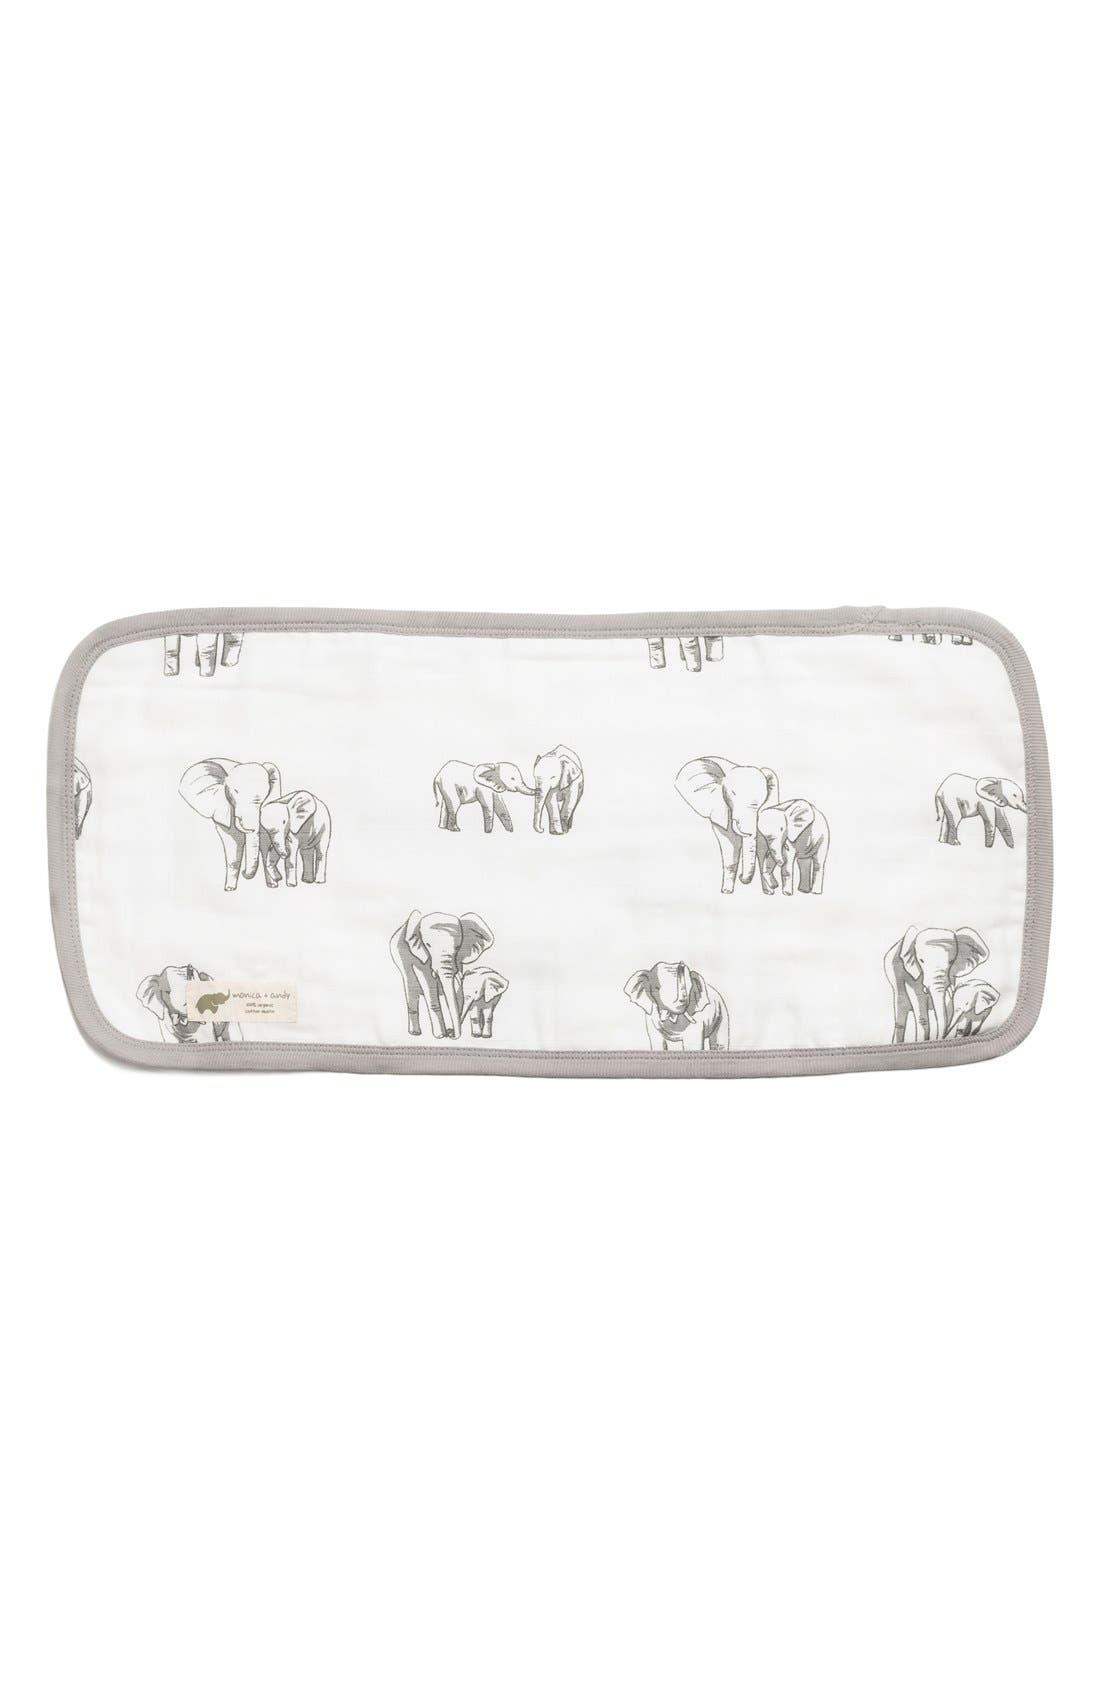 MONICA + ANDY Organic Cotton Burp Cloth